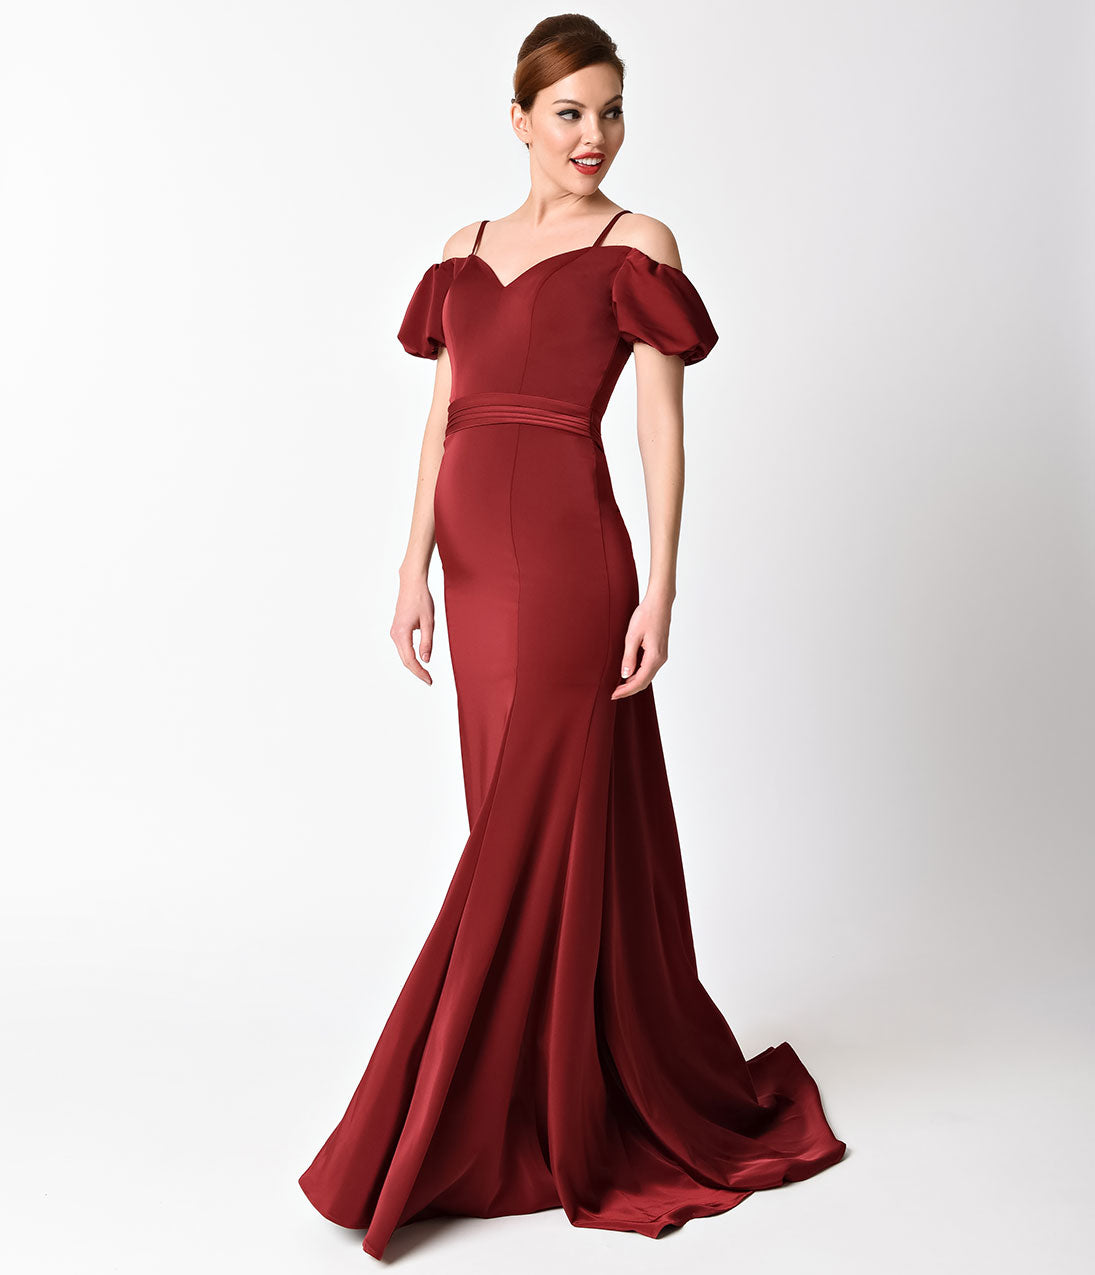 1930s Evening Dresses | Old Hollywood Dress Burgundy Off The Shoulder Lace Back Gown $201.00 AT vintagedancer.com